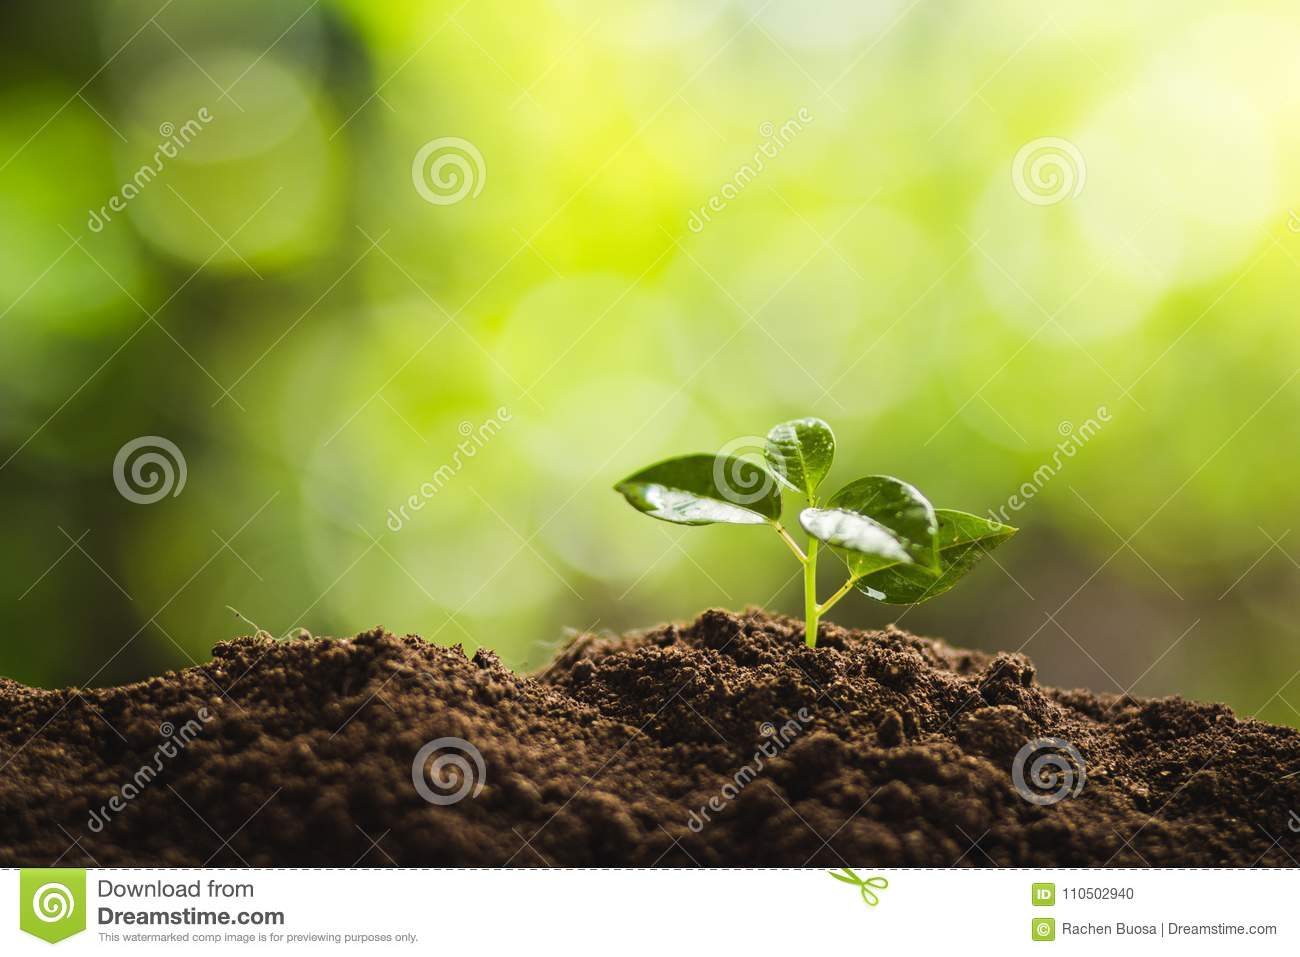 Planting Trees Tree Growth Seeding Fourth Step Seed Is A